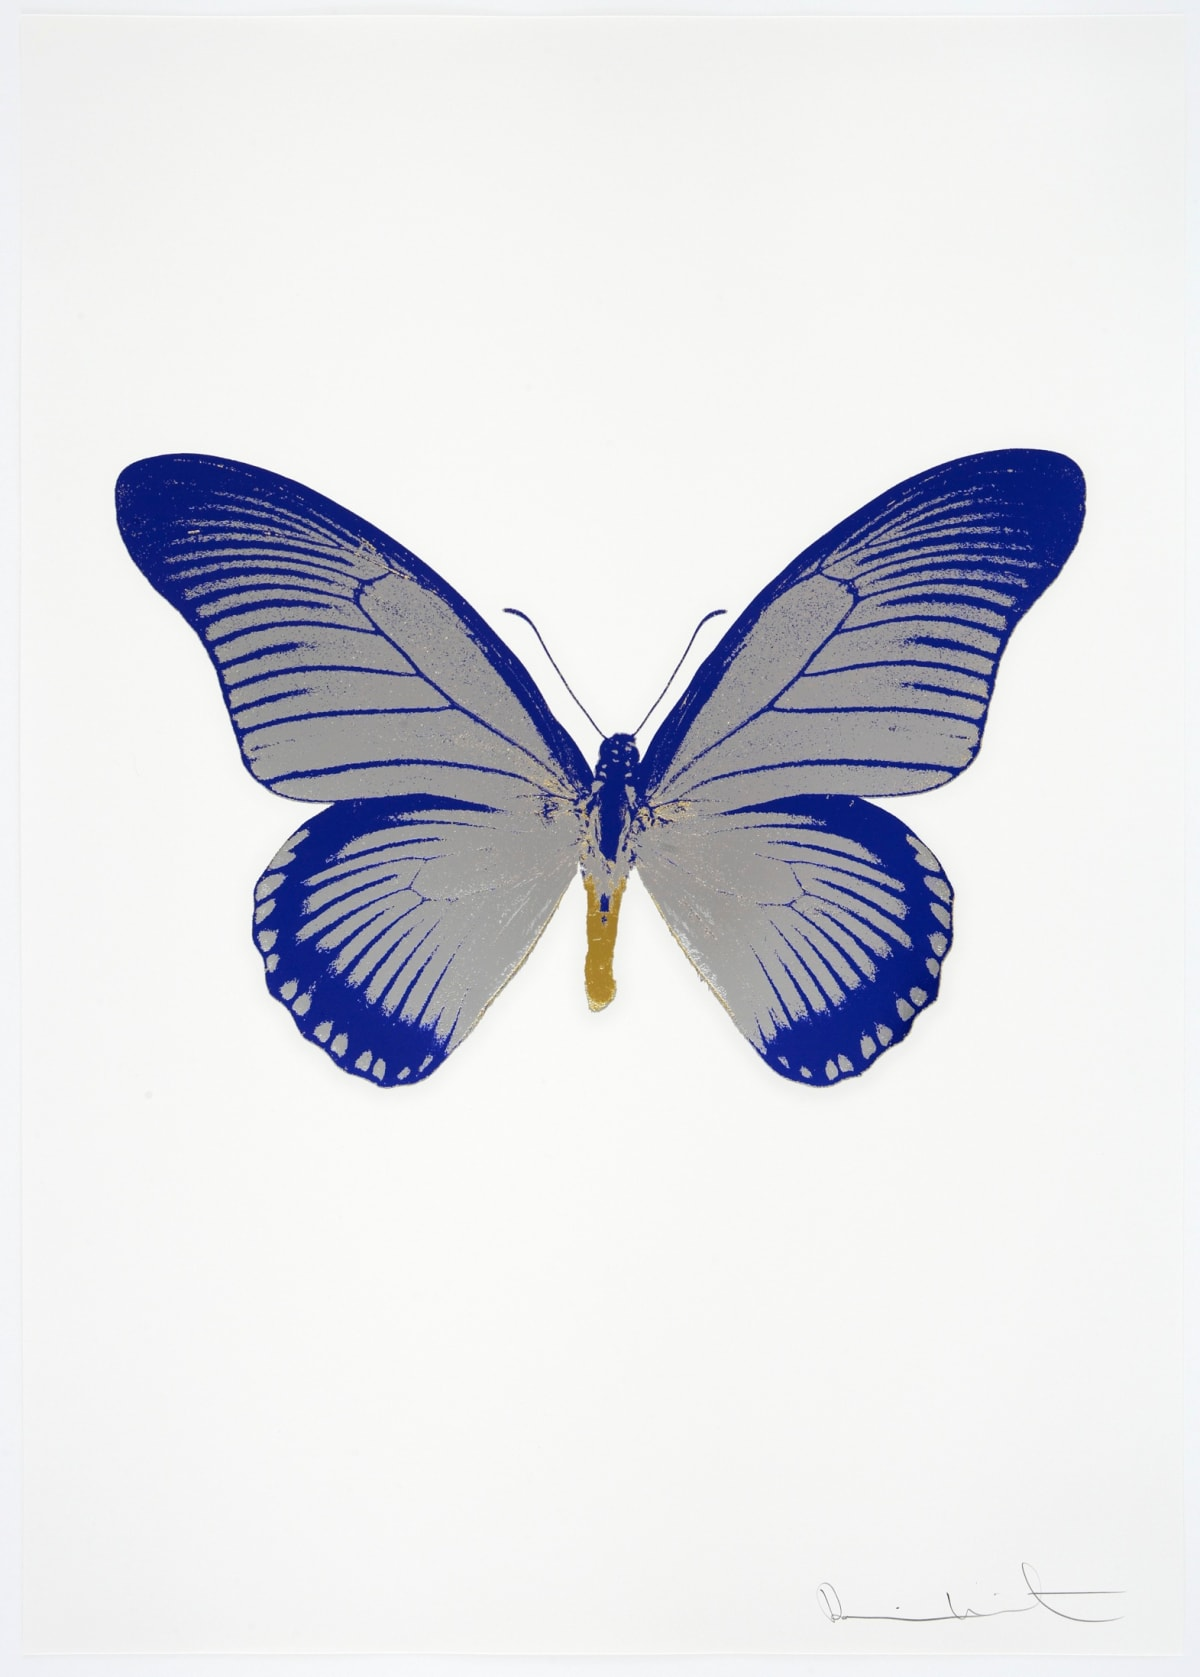 Damien Hirst The Souls IV - Silver Gloss/Westminster Blue/Oriental Gold, 2010 3 colour foil block on 300gsm Arches 88 archival paper. Signed and numbered. Published by Paul Stolper and Other Criteria 72 x 51cm OC8028 / 1418-51 Edition of 15